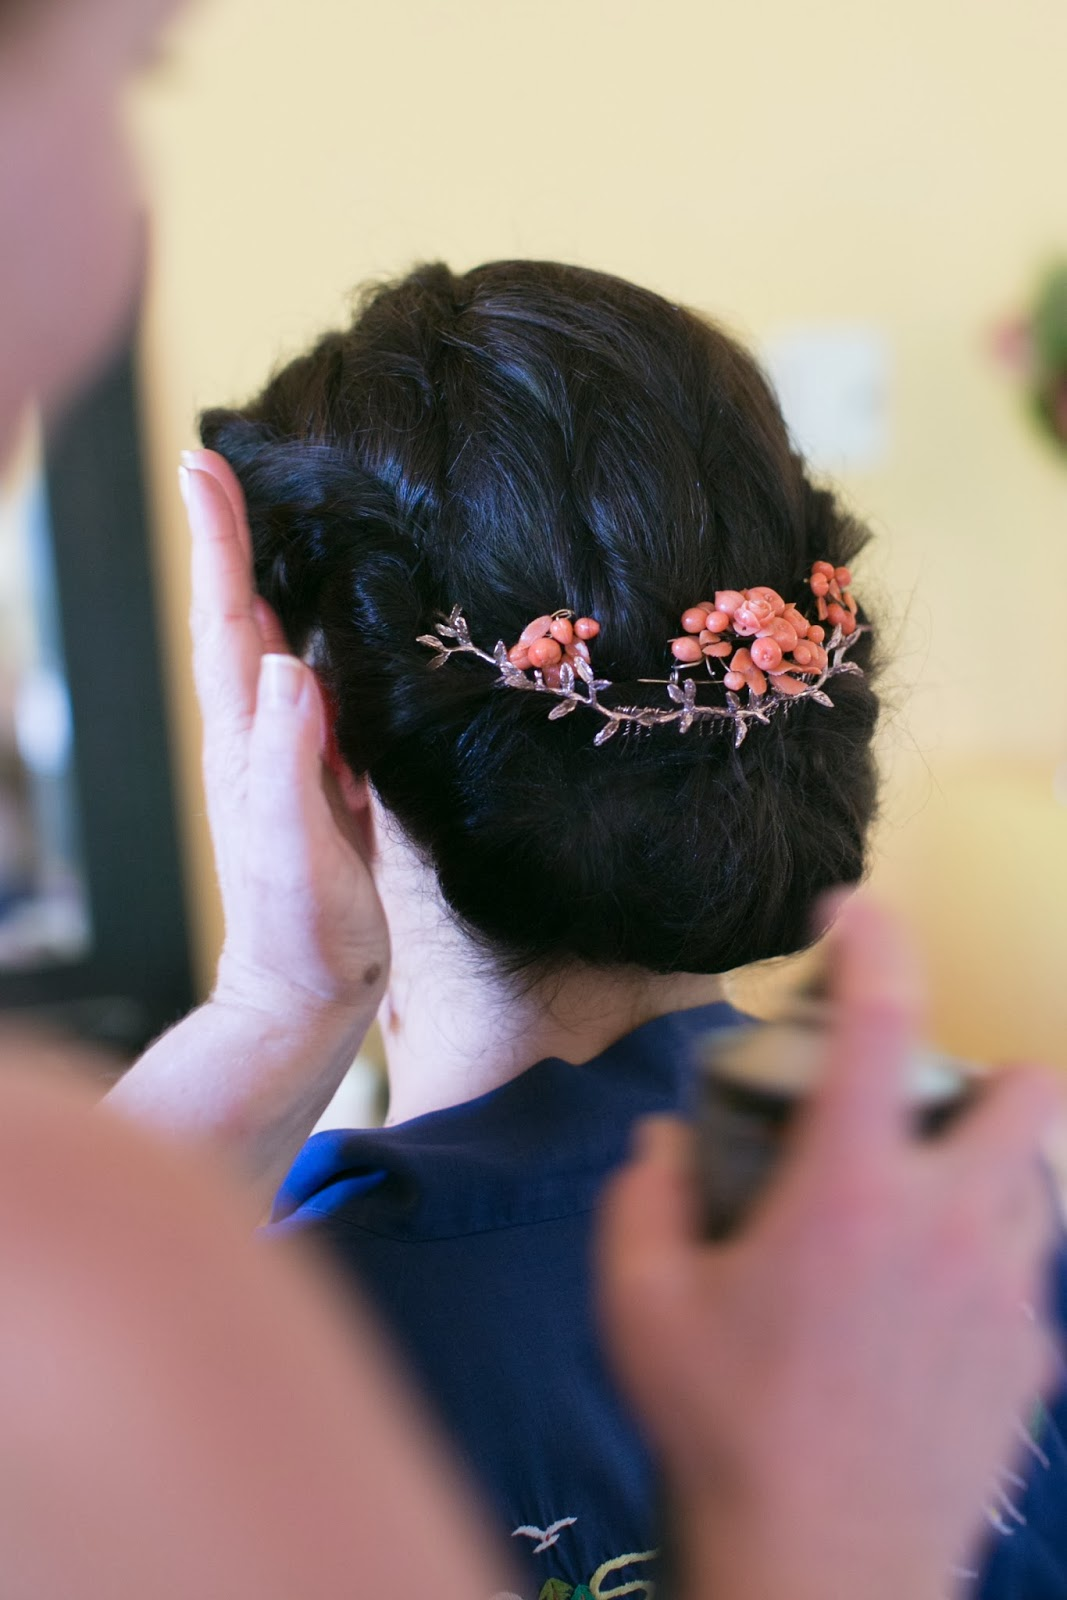 fran carter - blogging about wedding hair and make-up in sussex